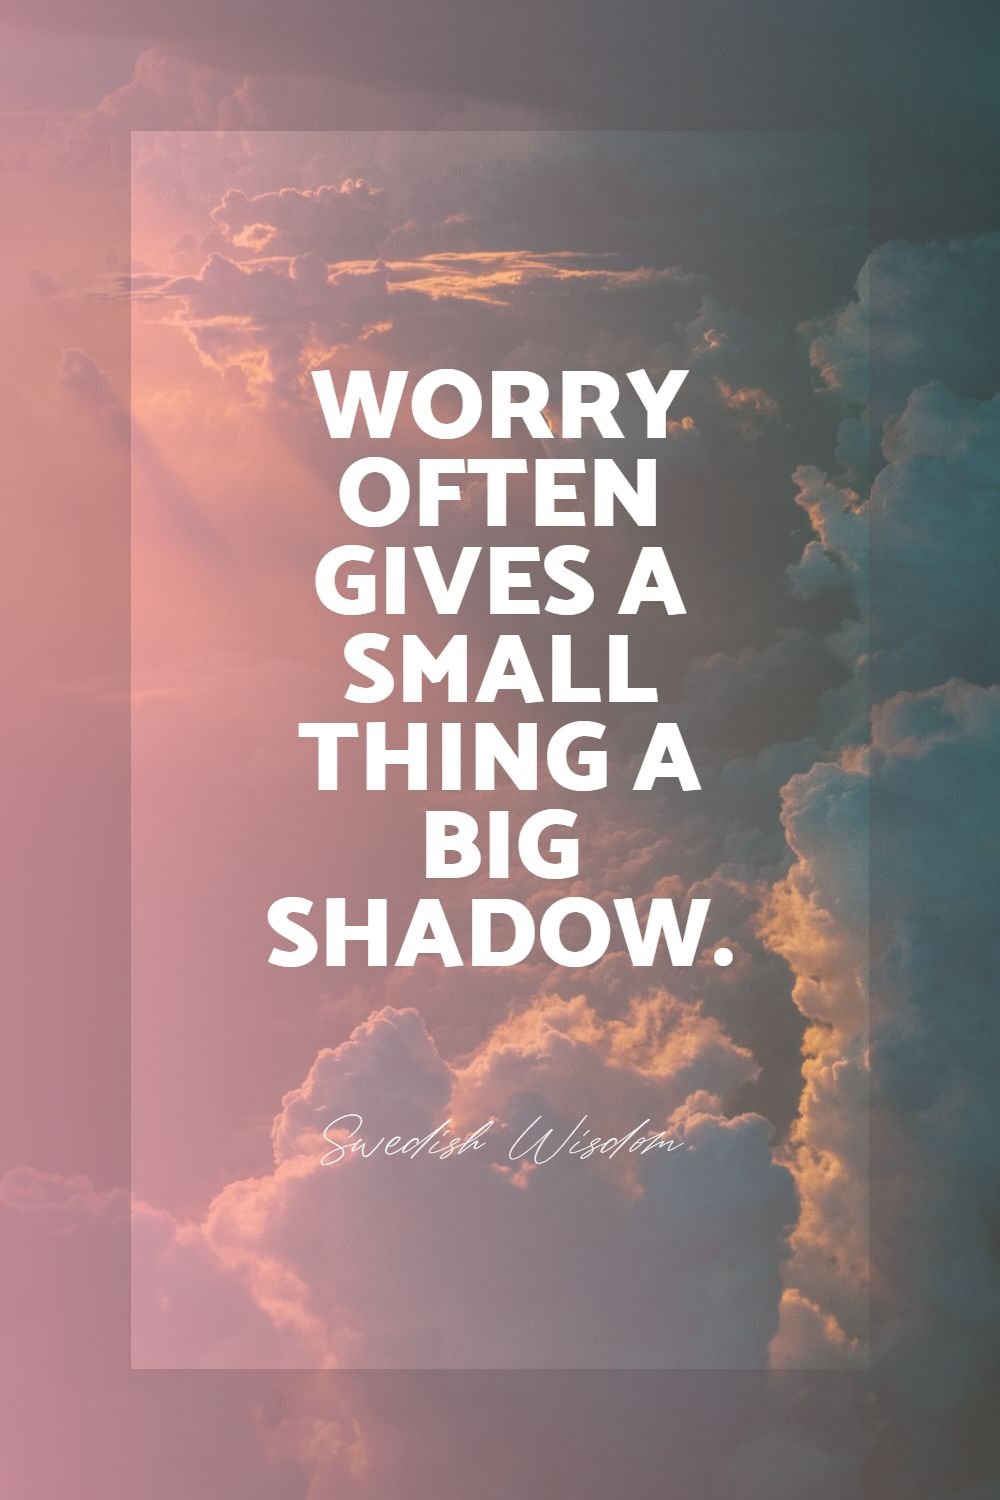 Quotes image of Worry often gives a small thing a big shadow.